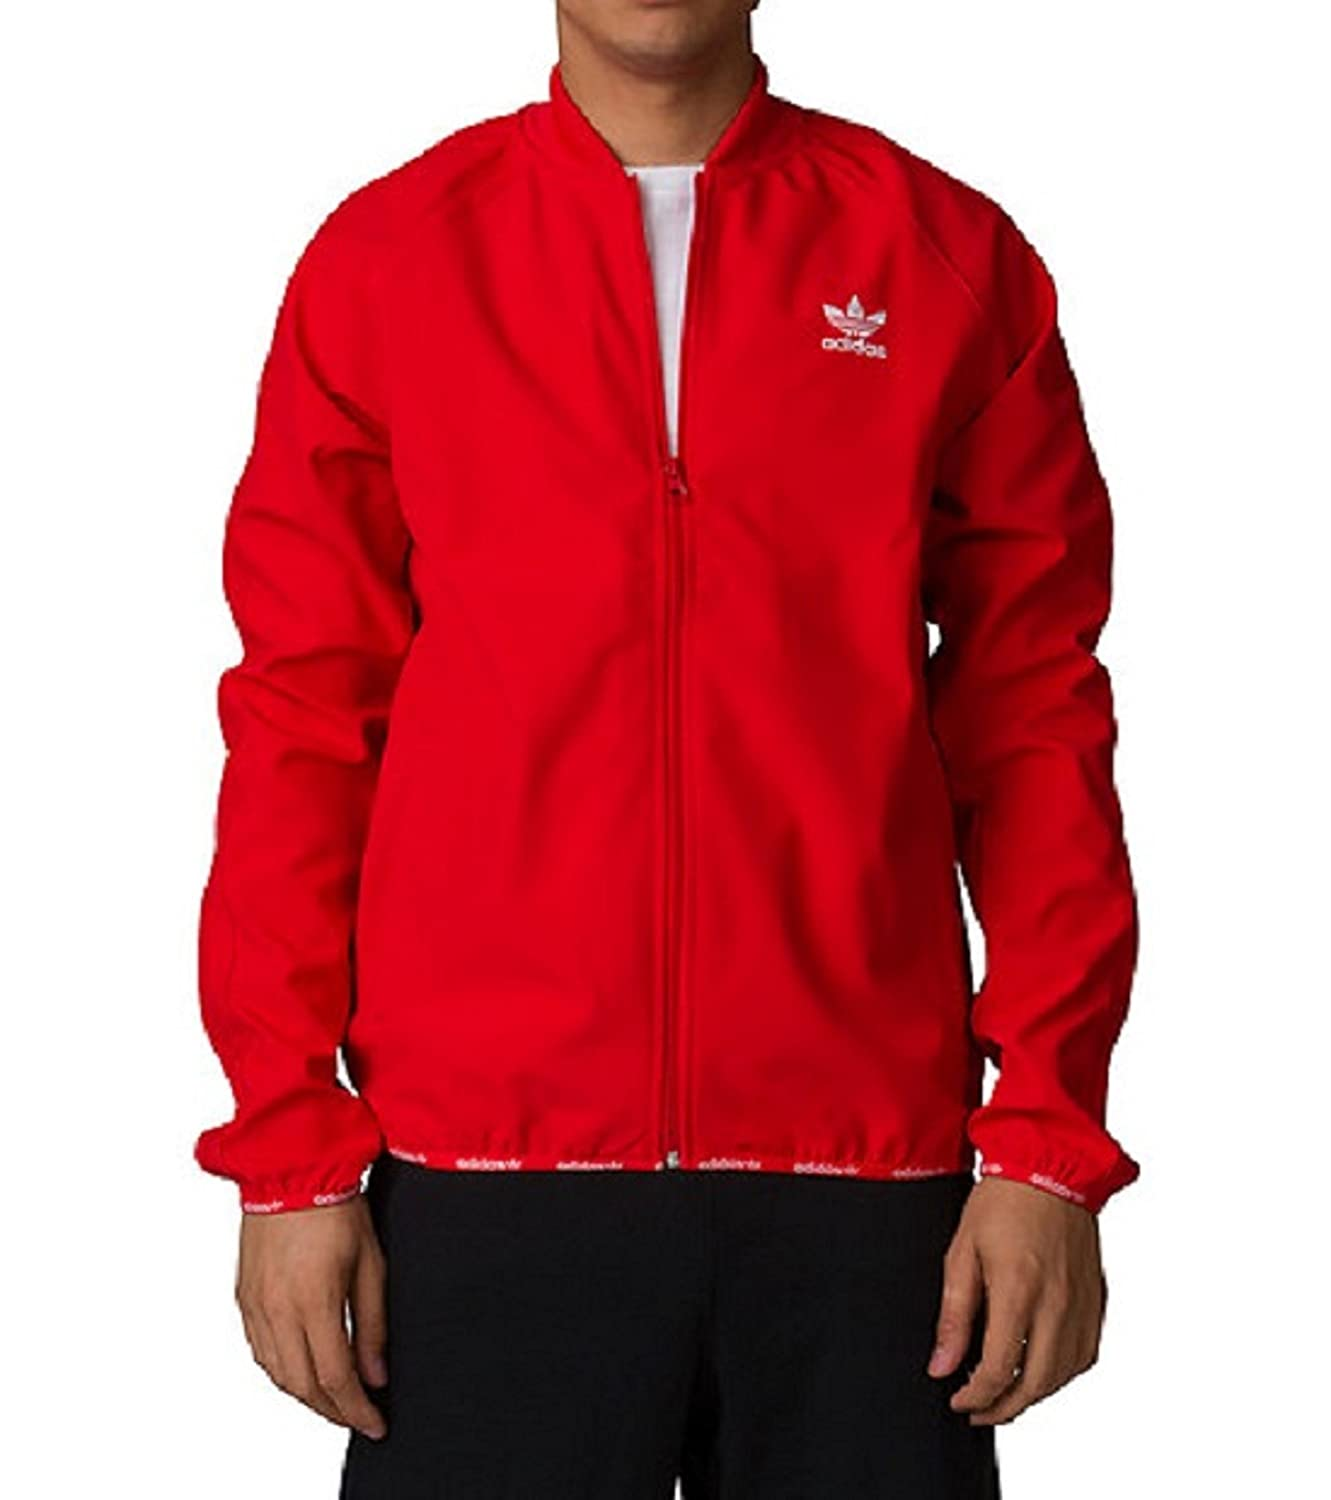 adidas Men's Originals Superstar Track Top 2.0 Jacket Red at